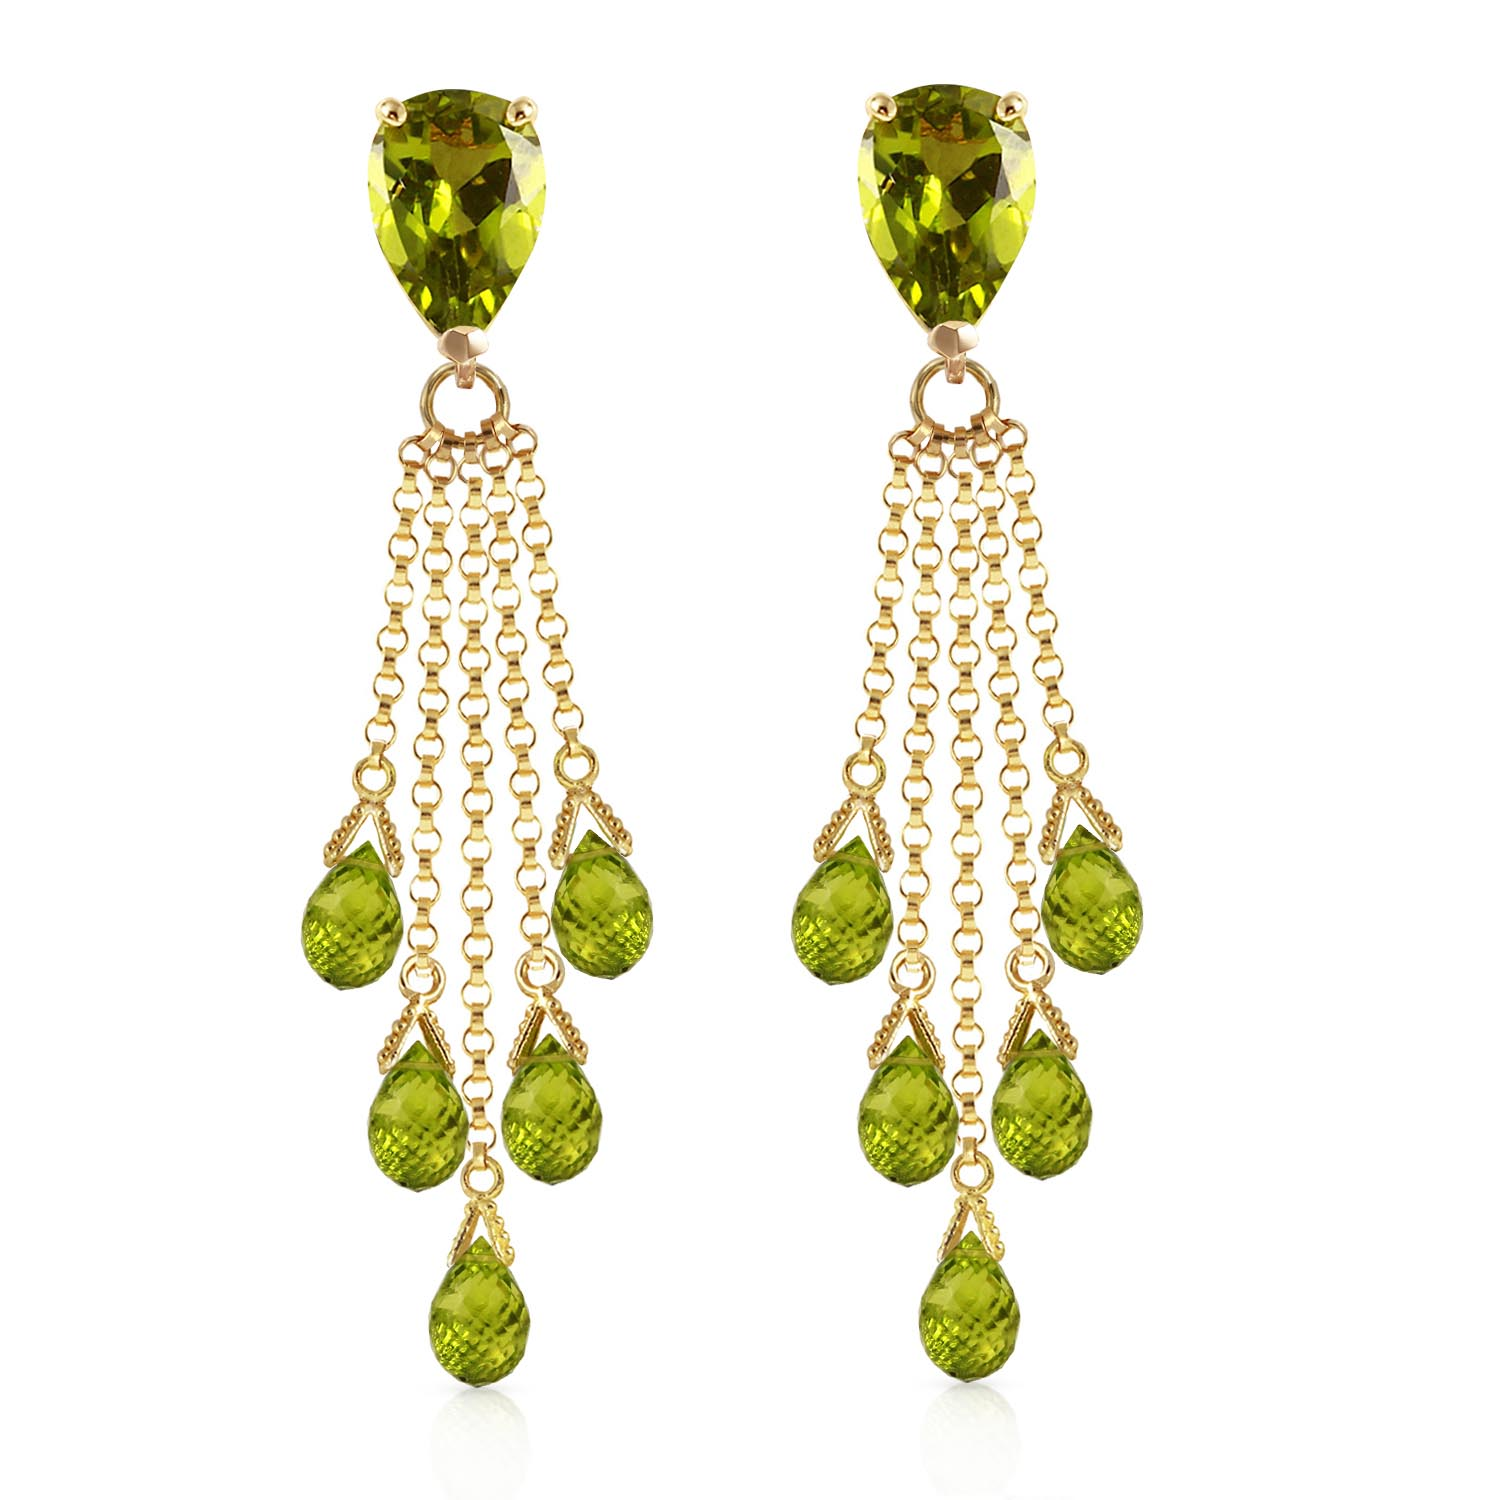 Peridot Comet Tail Drop Earrings 15.5ctw in 14K Gold